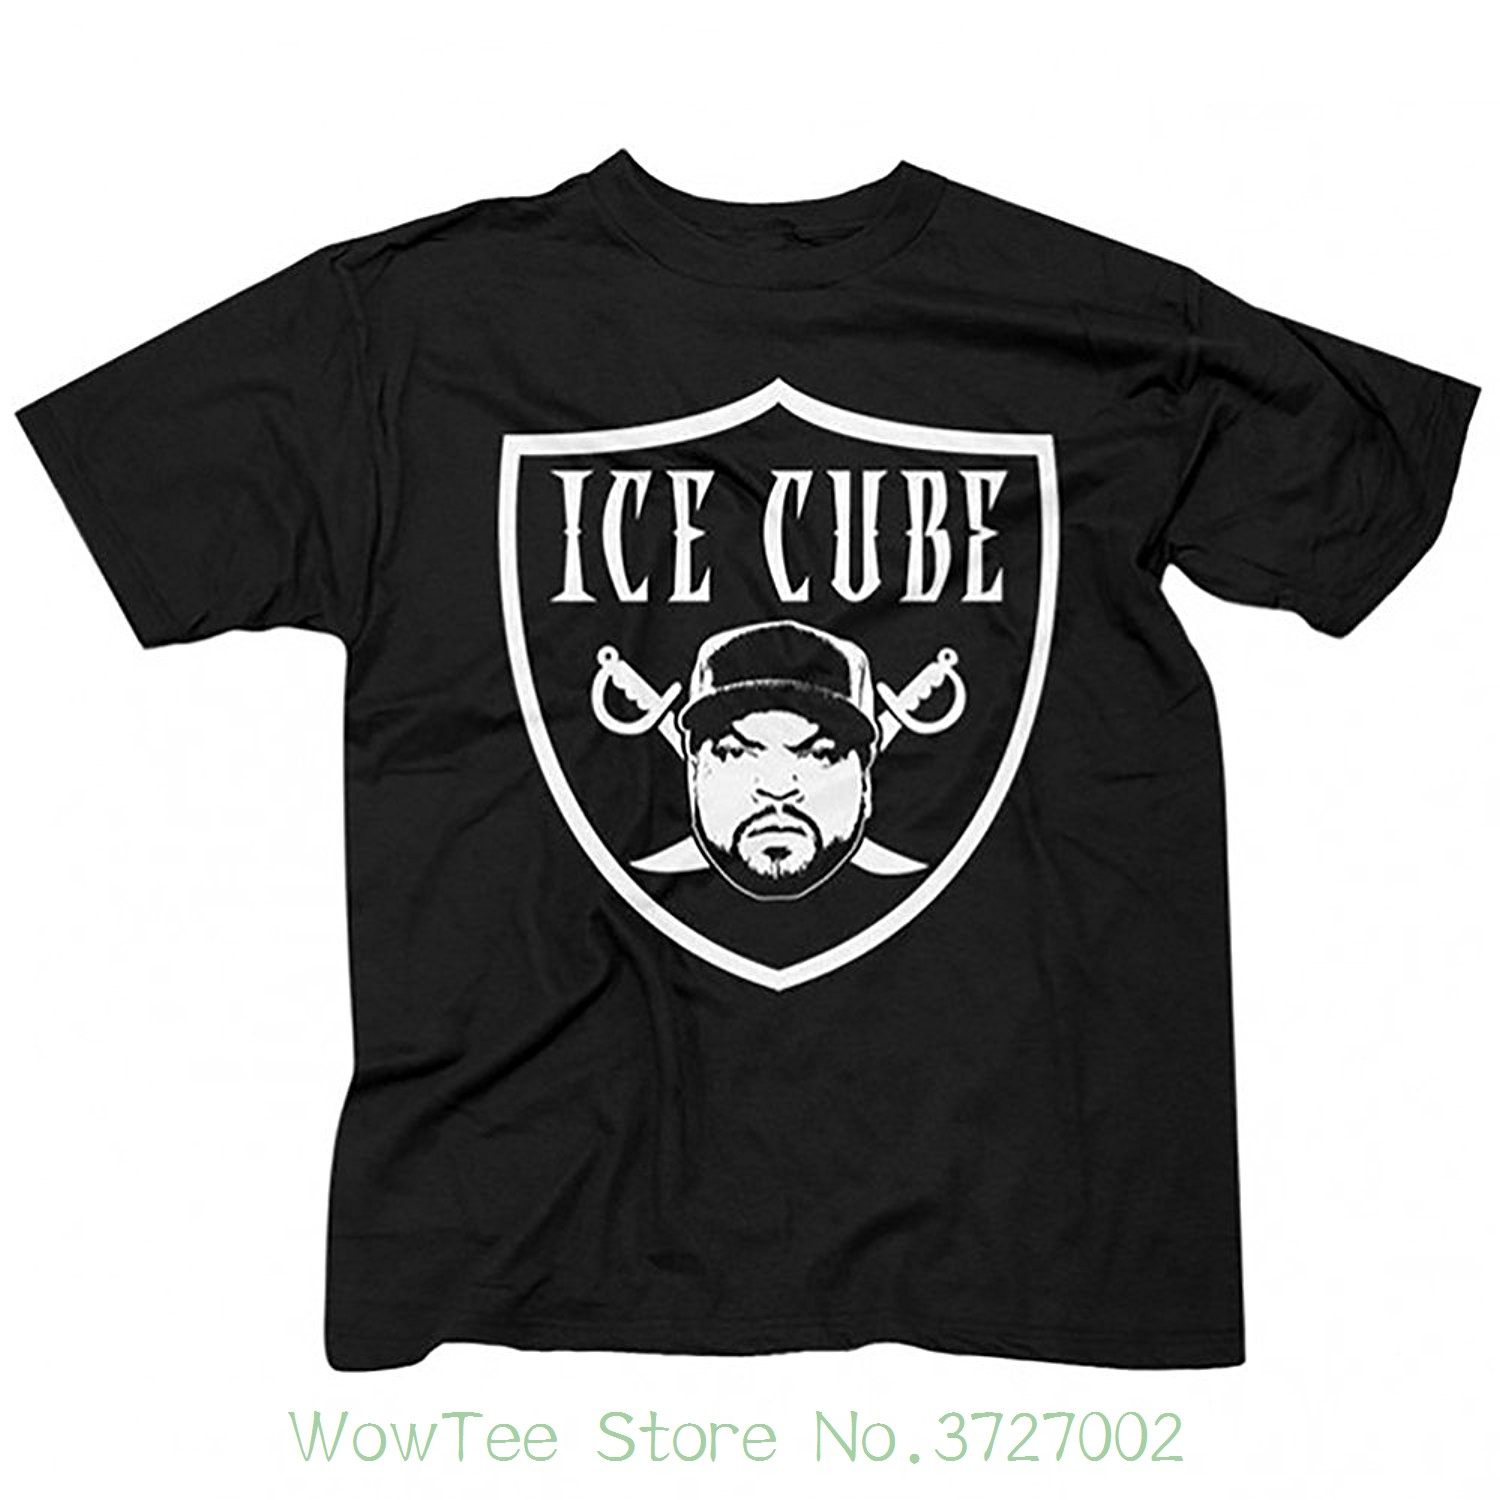 Nwa ( N.w.a. ) Ice Cube Raiders Logo Lench Mob Compton T-shirt ( S - 3xl ) Short Sleeve T-shirt Funny Print